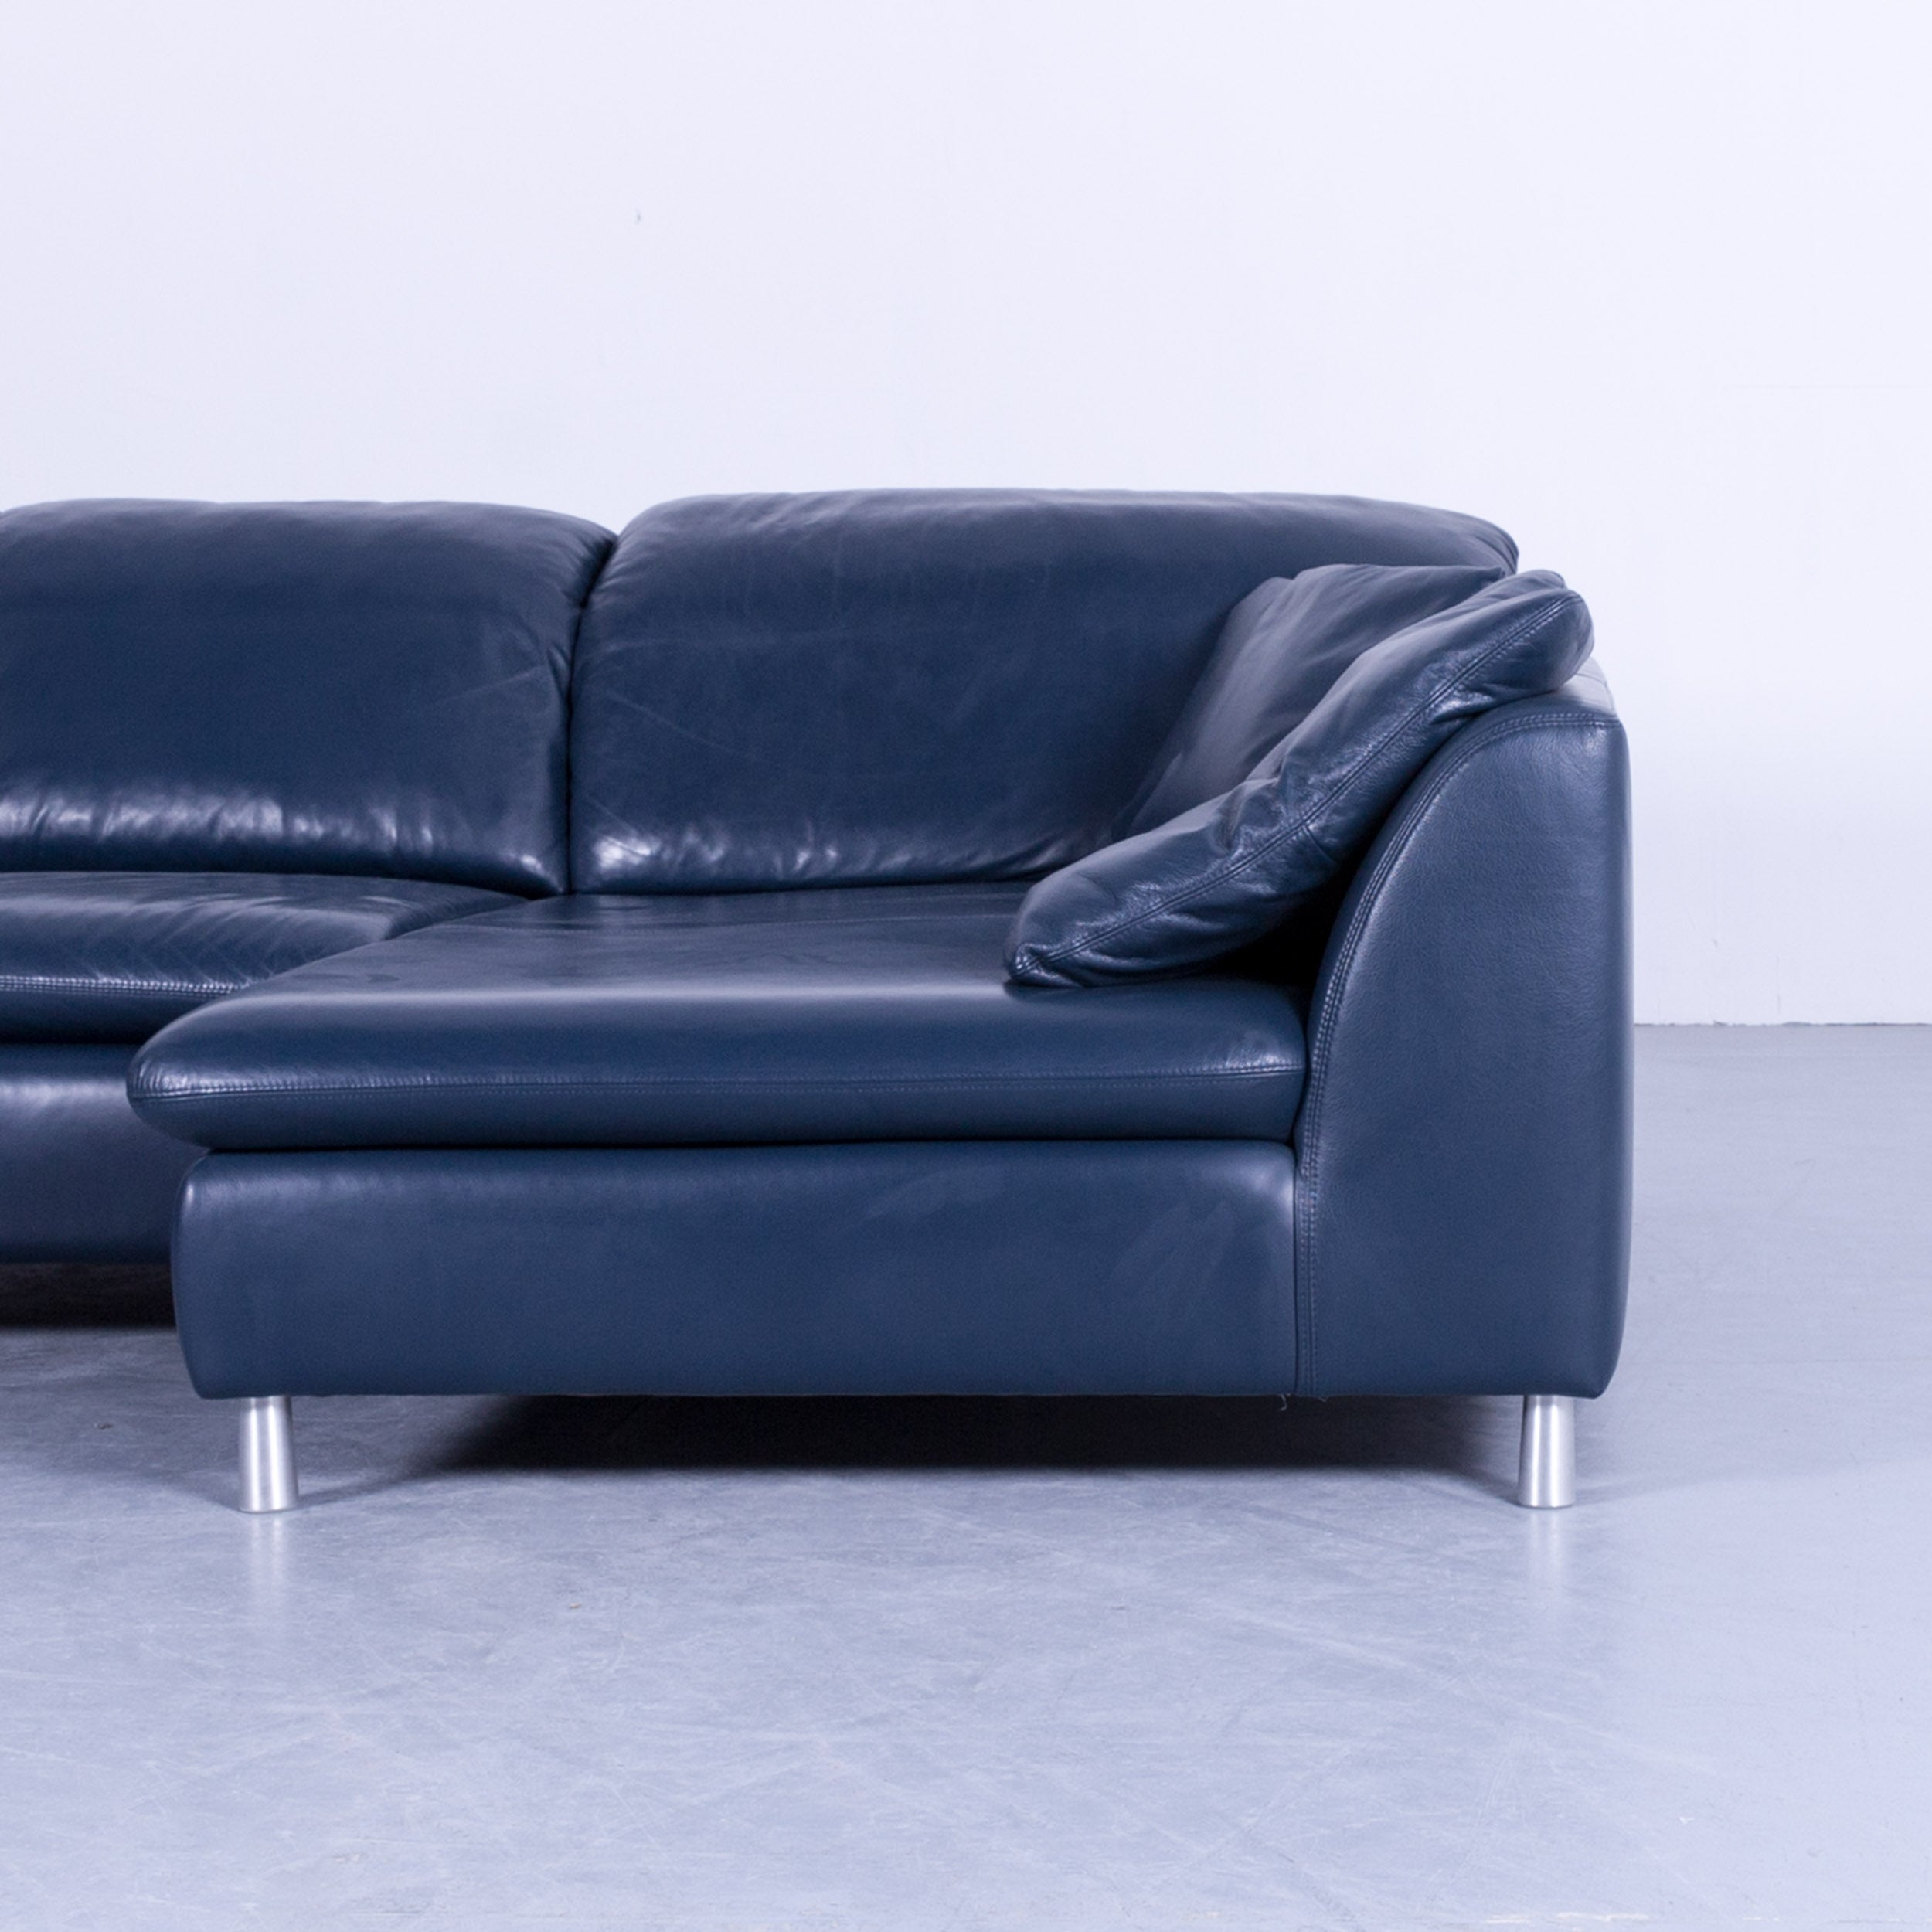 Willi Schillig Leather Corner Couch Blue Sleeping Function Three